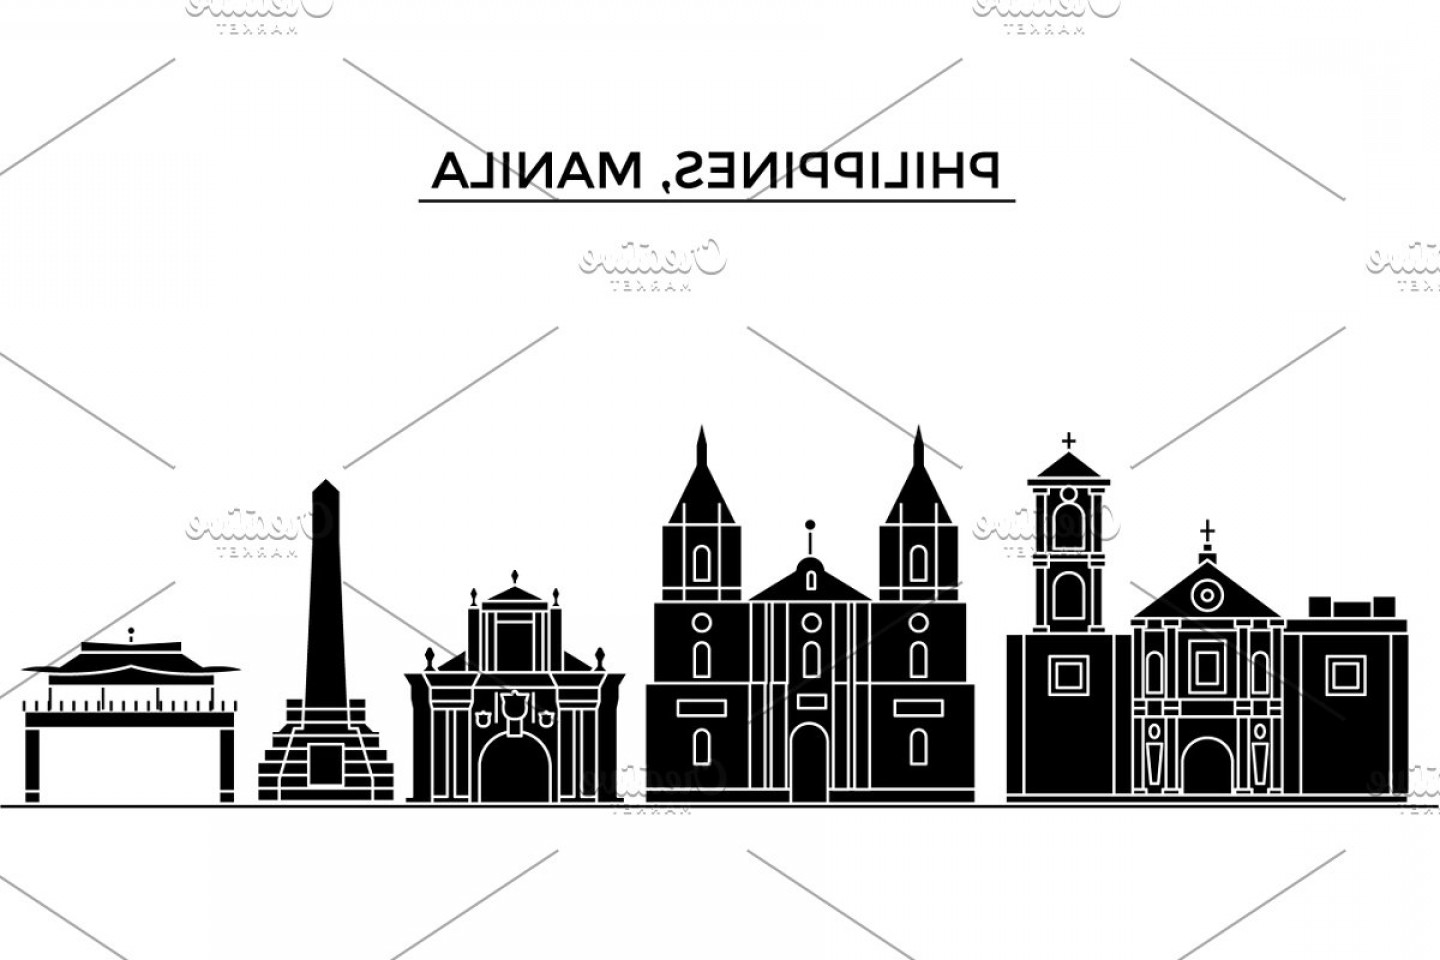 Architecture Vector: Philippines Manila Architecture Vector City Skyline Travel Cityscape With Landmarks Buildings Isolated Sights On Background